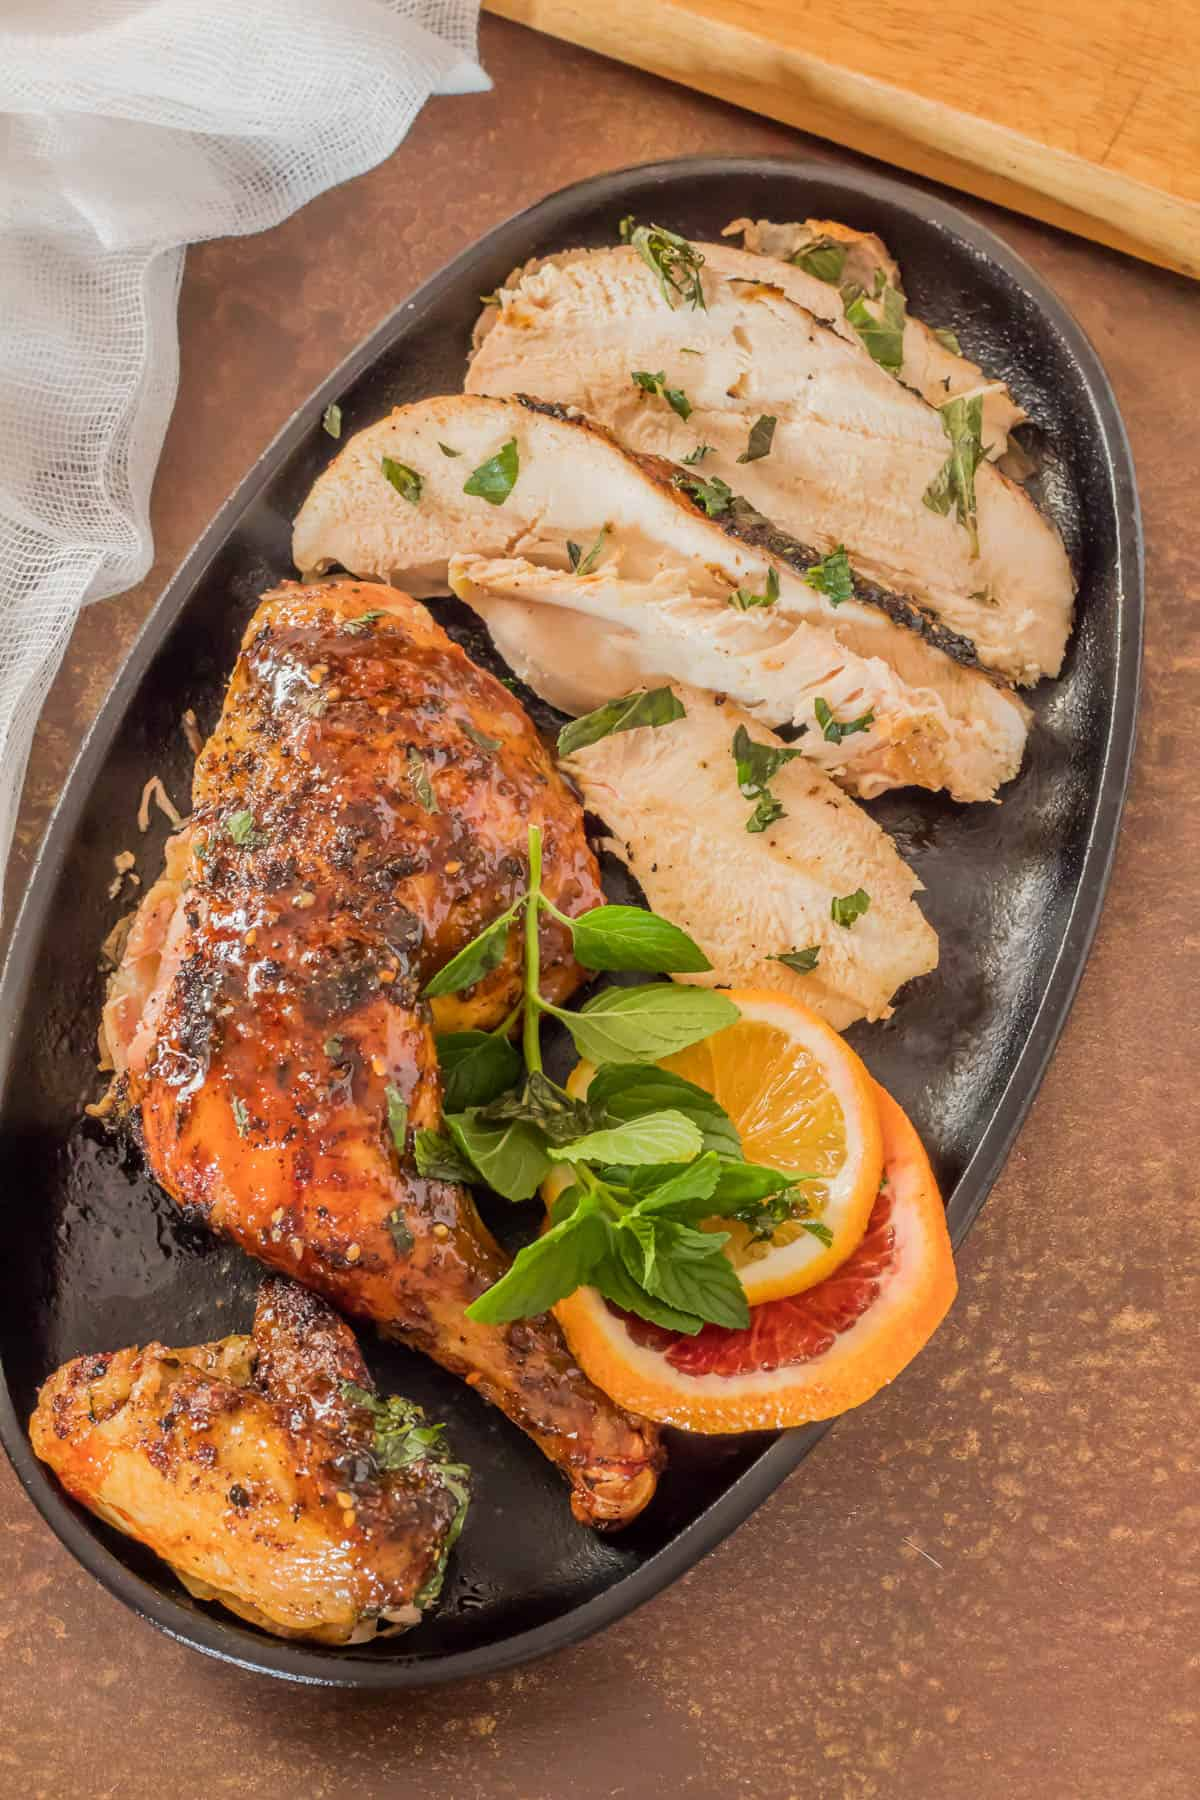 Butterflied and Grilled Za'atar Chicken - Chicken sliced for serving in a cast iron plate.